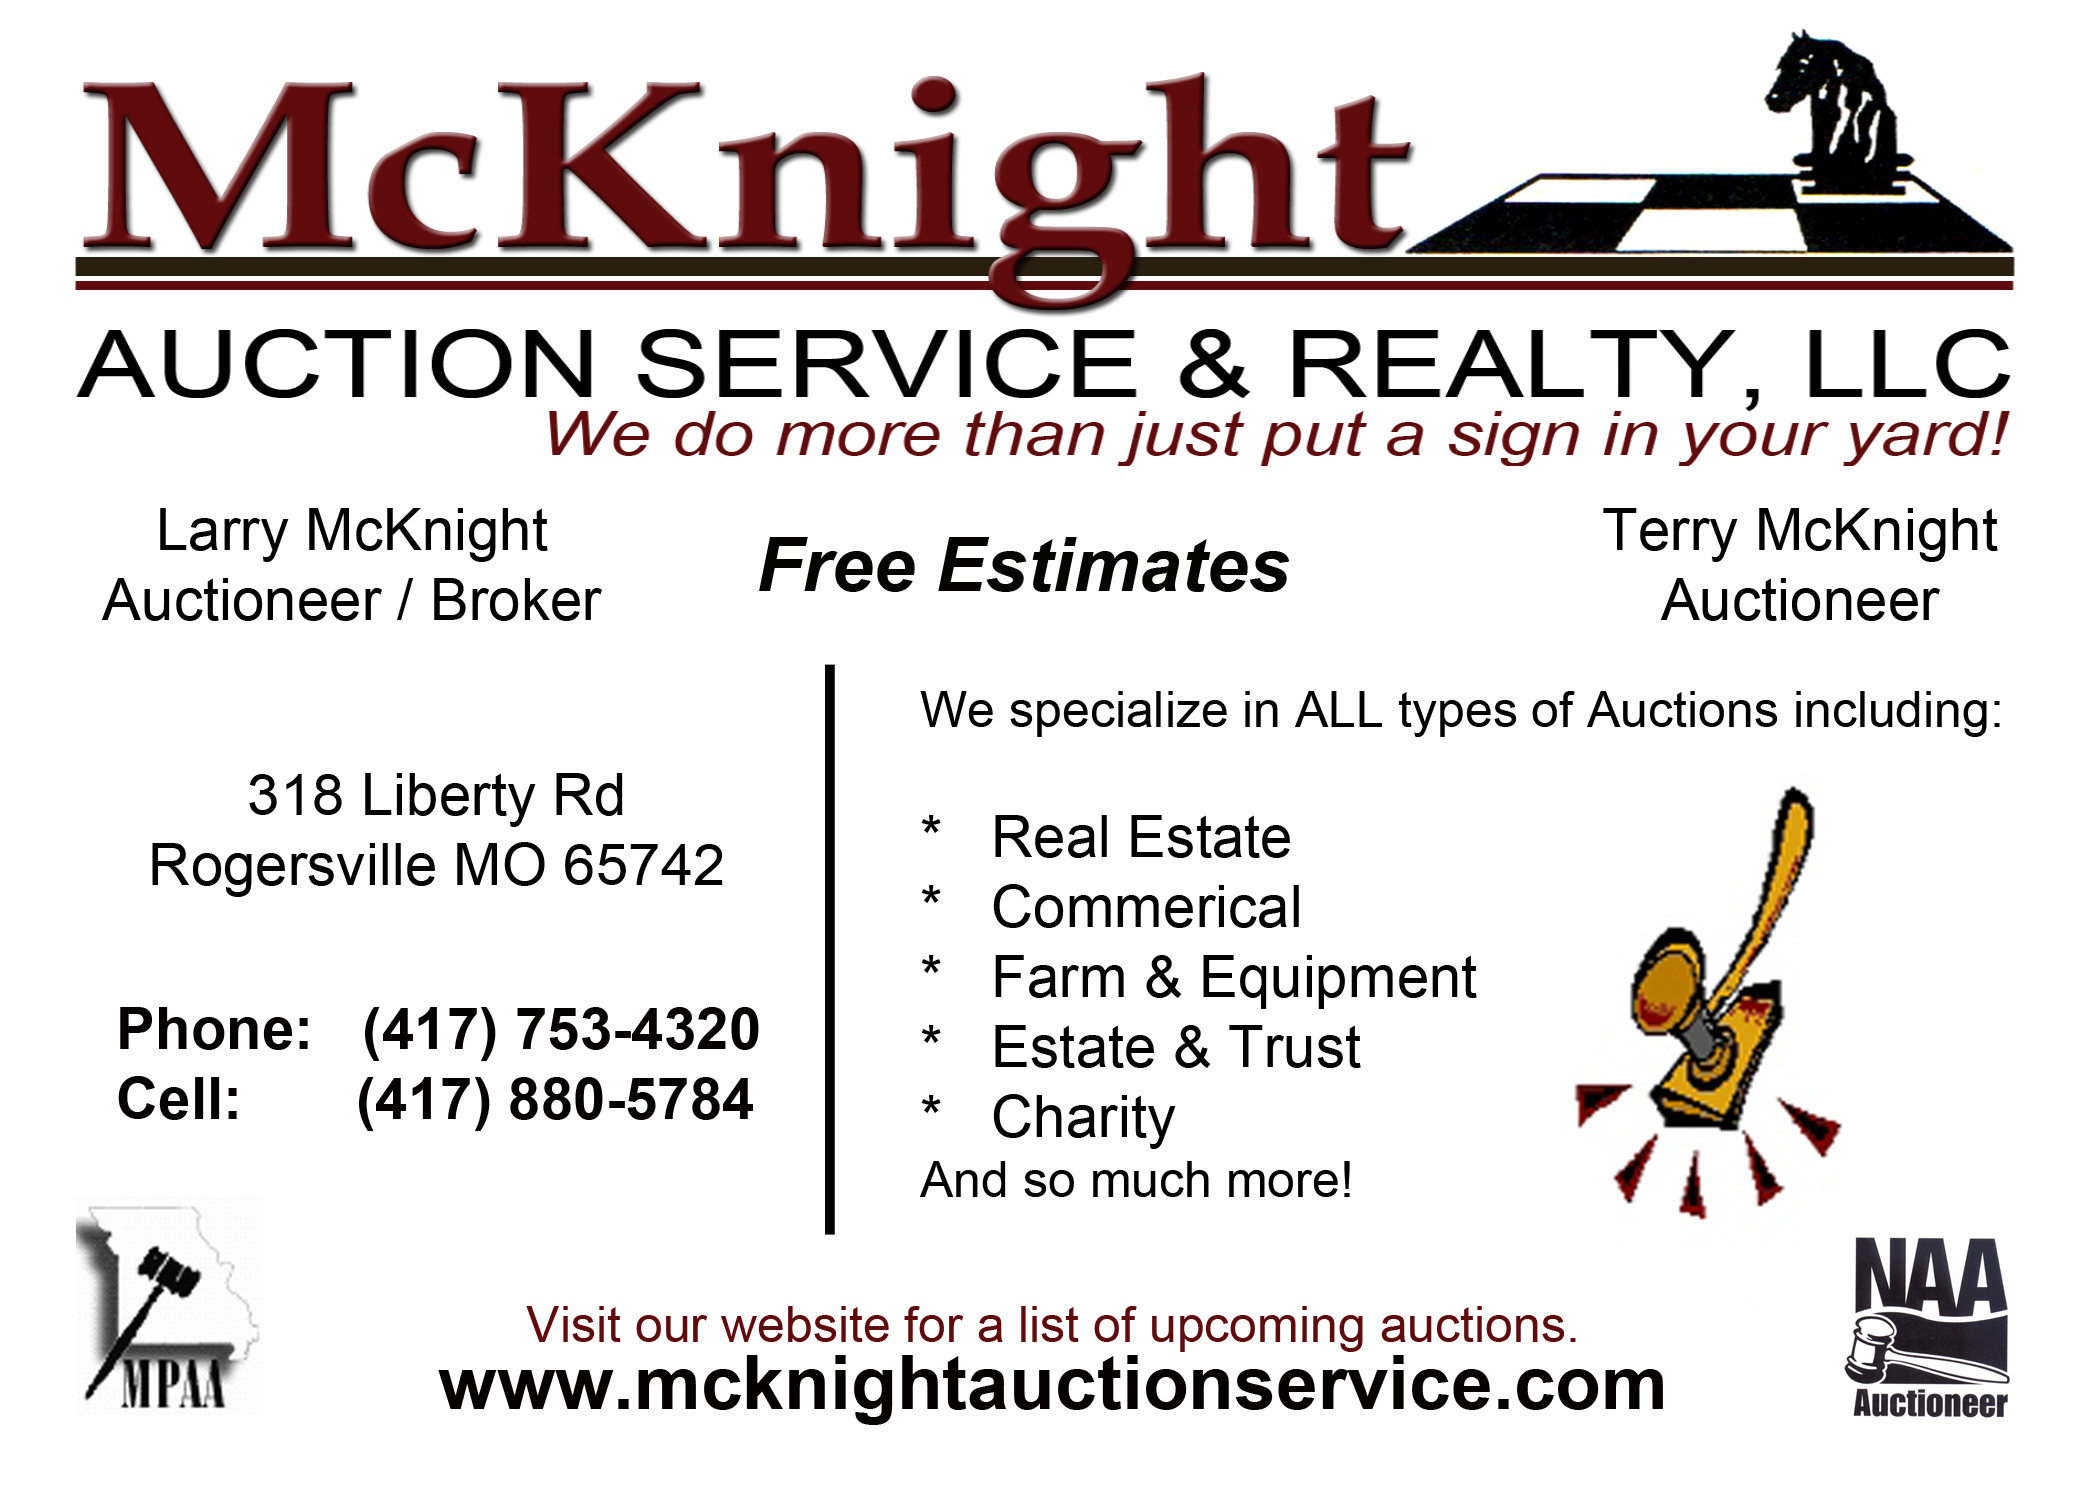 McKnight Auction Service & Realty, LLC image 0